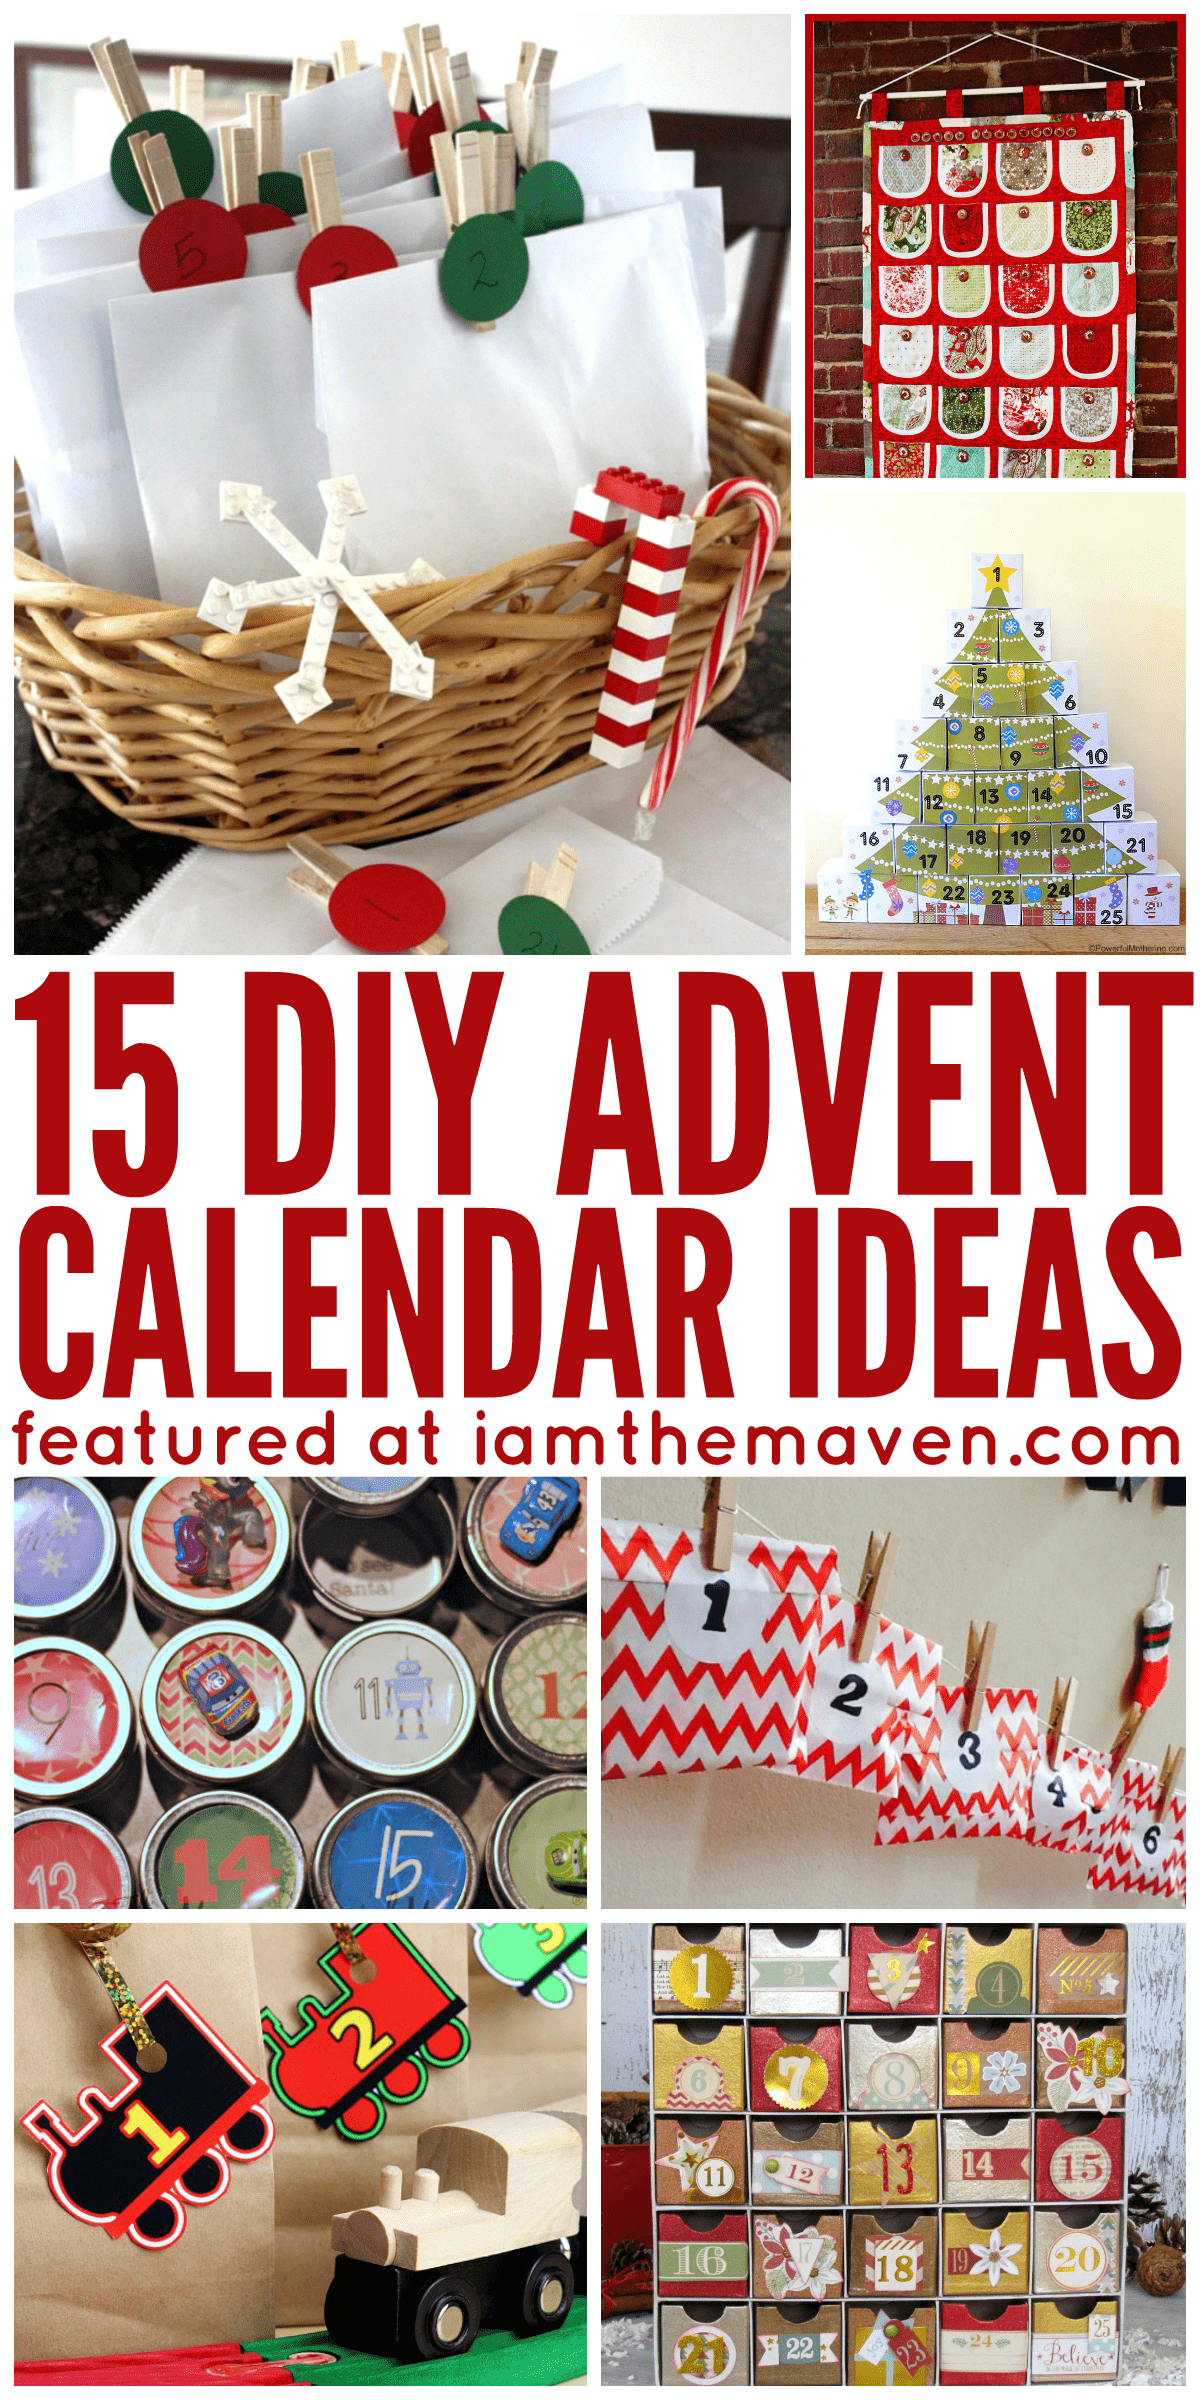 Ideas For Advent Calendar Netmums : Christmas traditions advent calendar ideas i am the maven